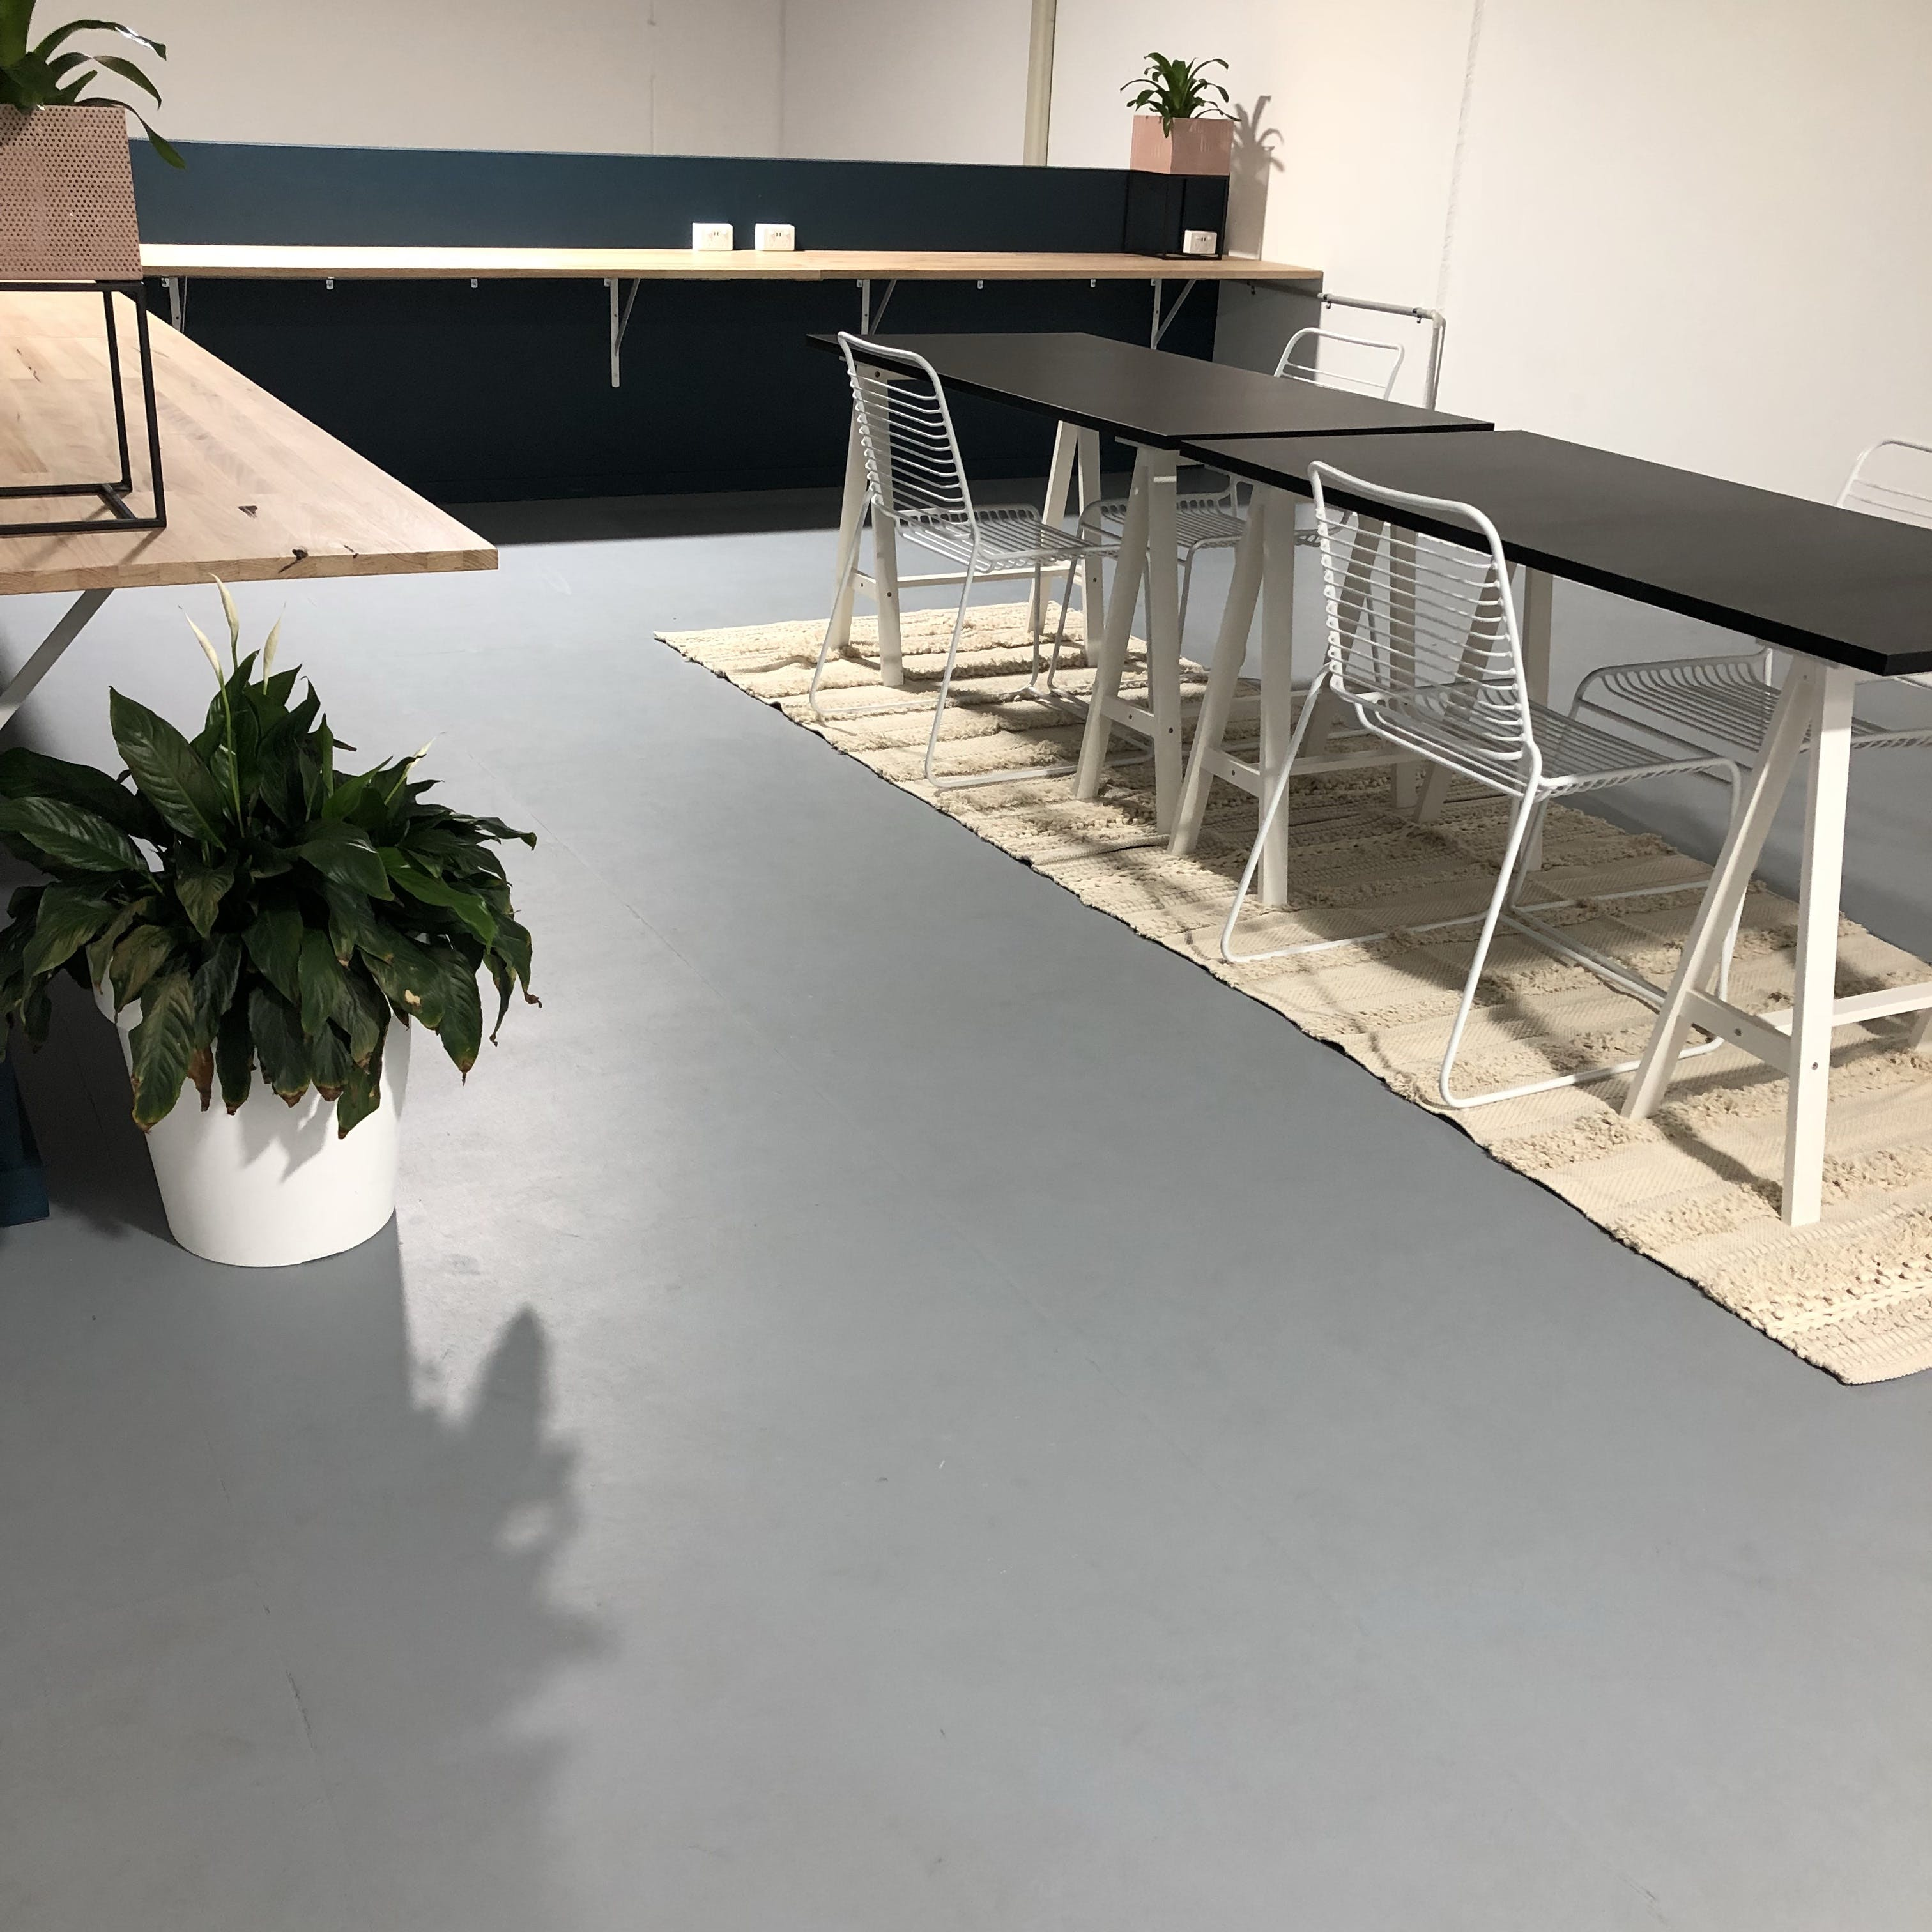 Event Space Weekend Saturday OR Sunday, multi-use area at Bridge Coworking Meeting and Event Space Geelong, image 1